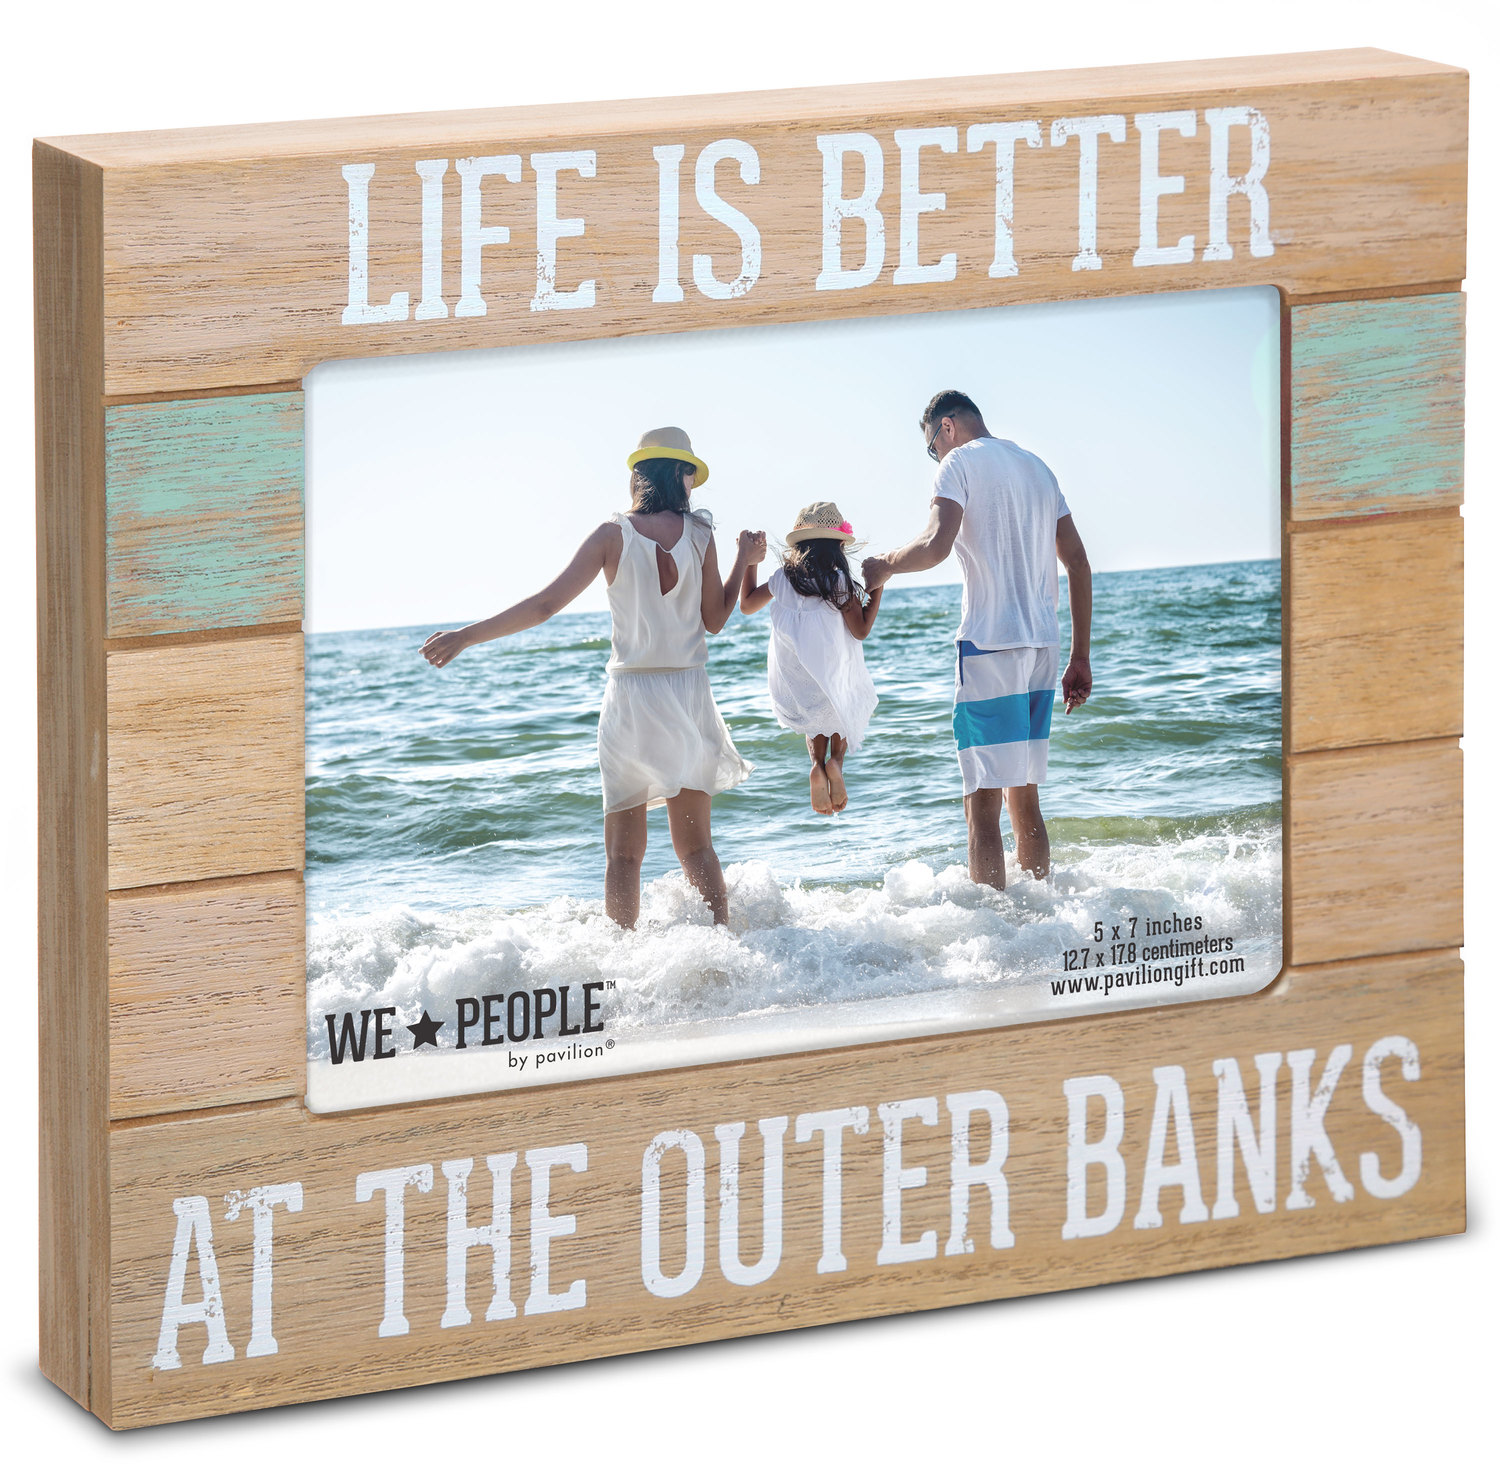 "OBX People by We People - OBX People - 9"" x 7.25"" Frame (Holds 5"" x 7"" photo)"